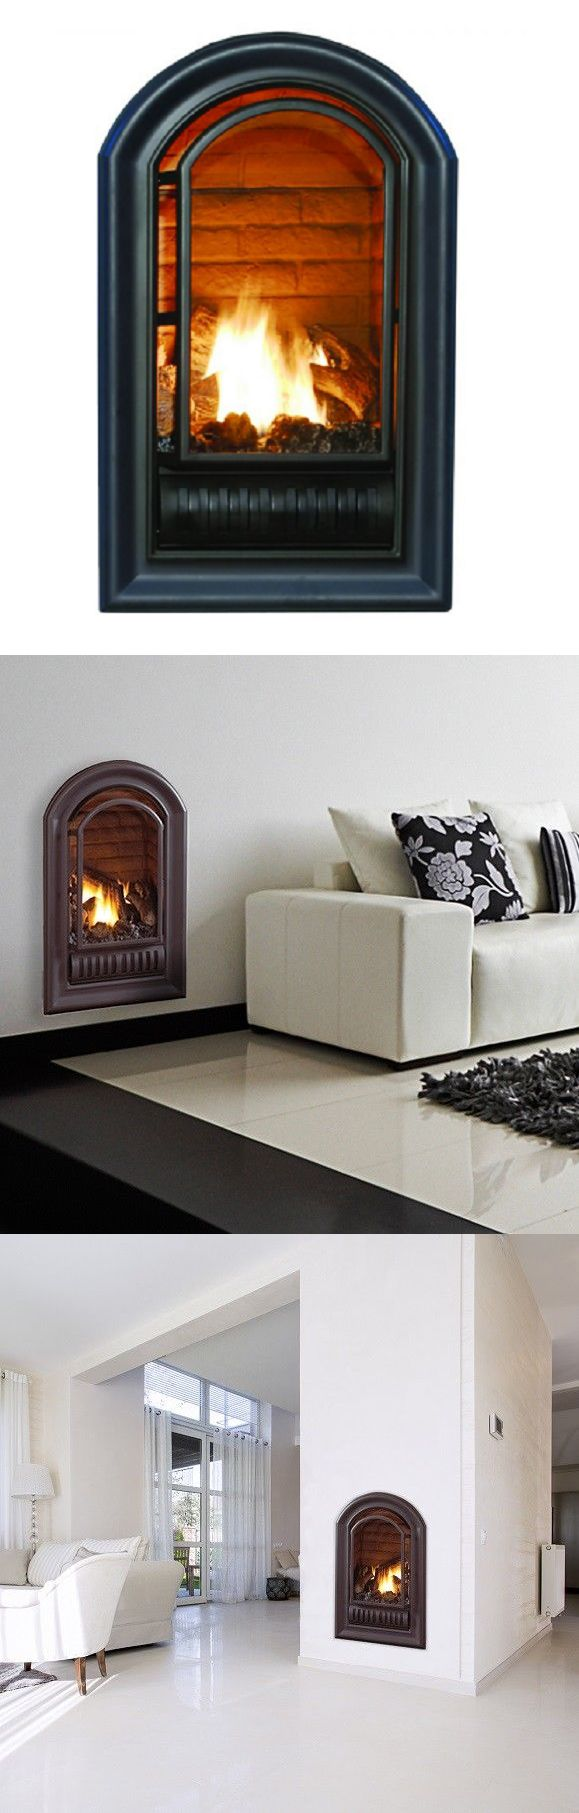 Inserts fireplace accessories new york by bowden s fireside - Fireplace Mantels And Surrounds 79650 Series Natural Gas Ventless Fireplace Insert 20 000 Btu Millivolt Control